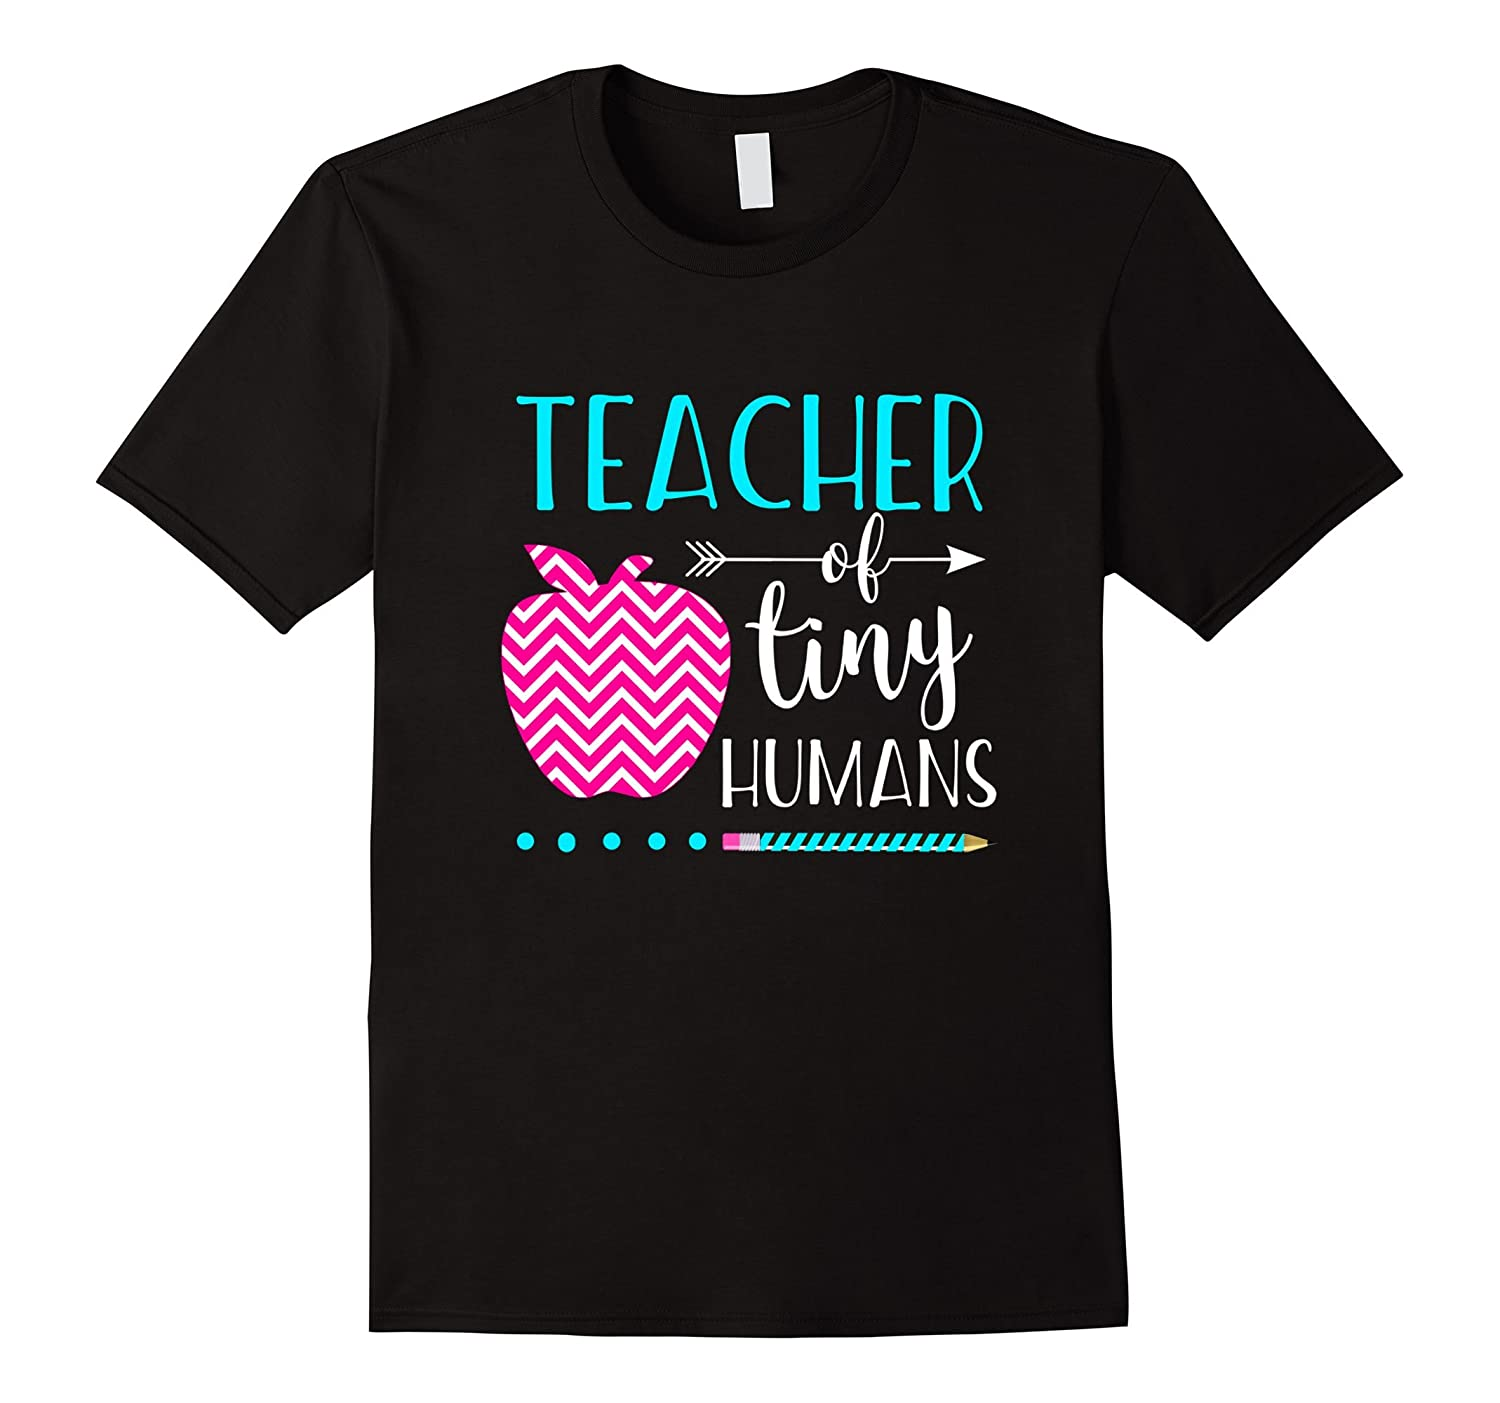 Funny Kindergarten Preschool Pre-K Teacher Shirt for 1st Day-T-Shirt